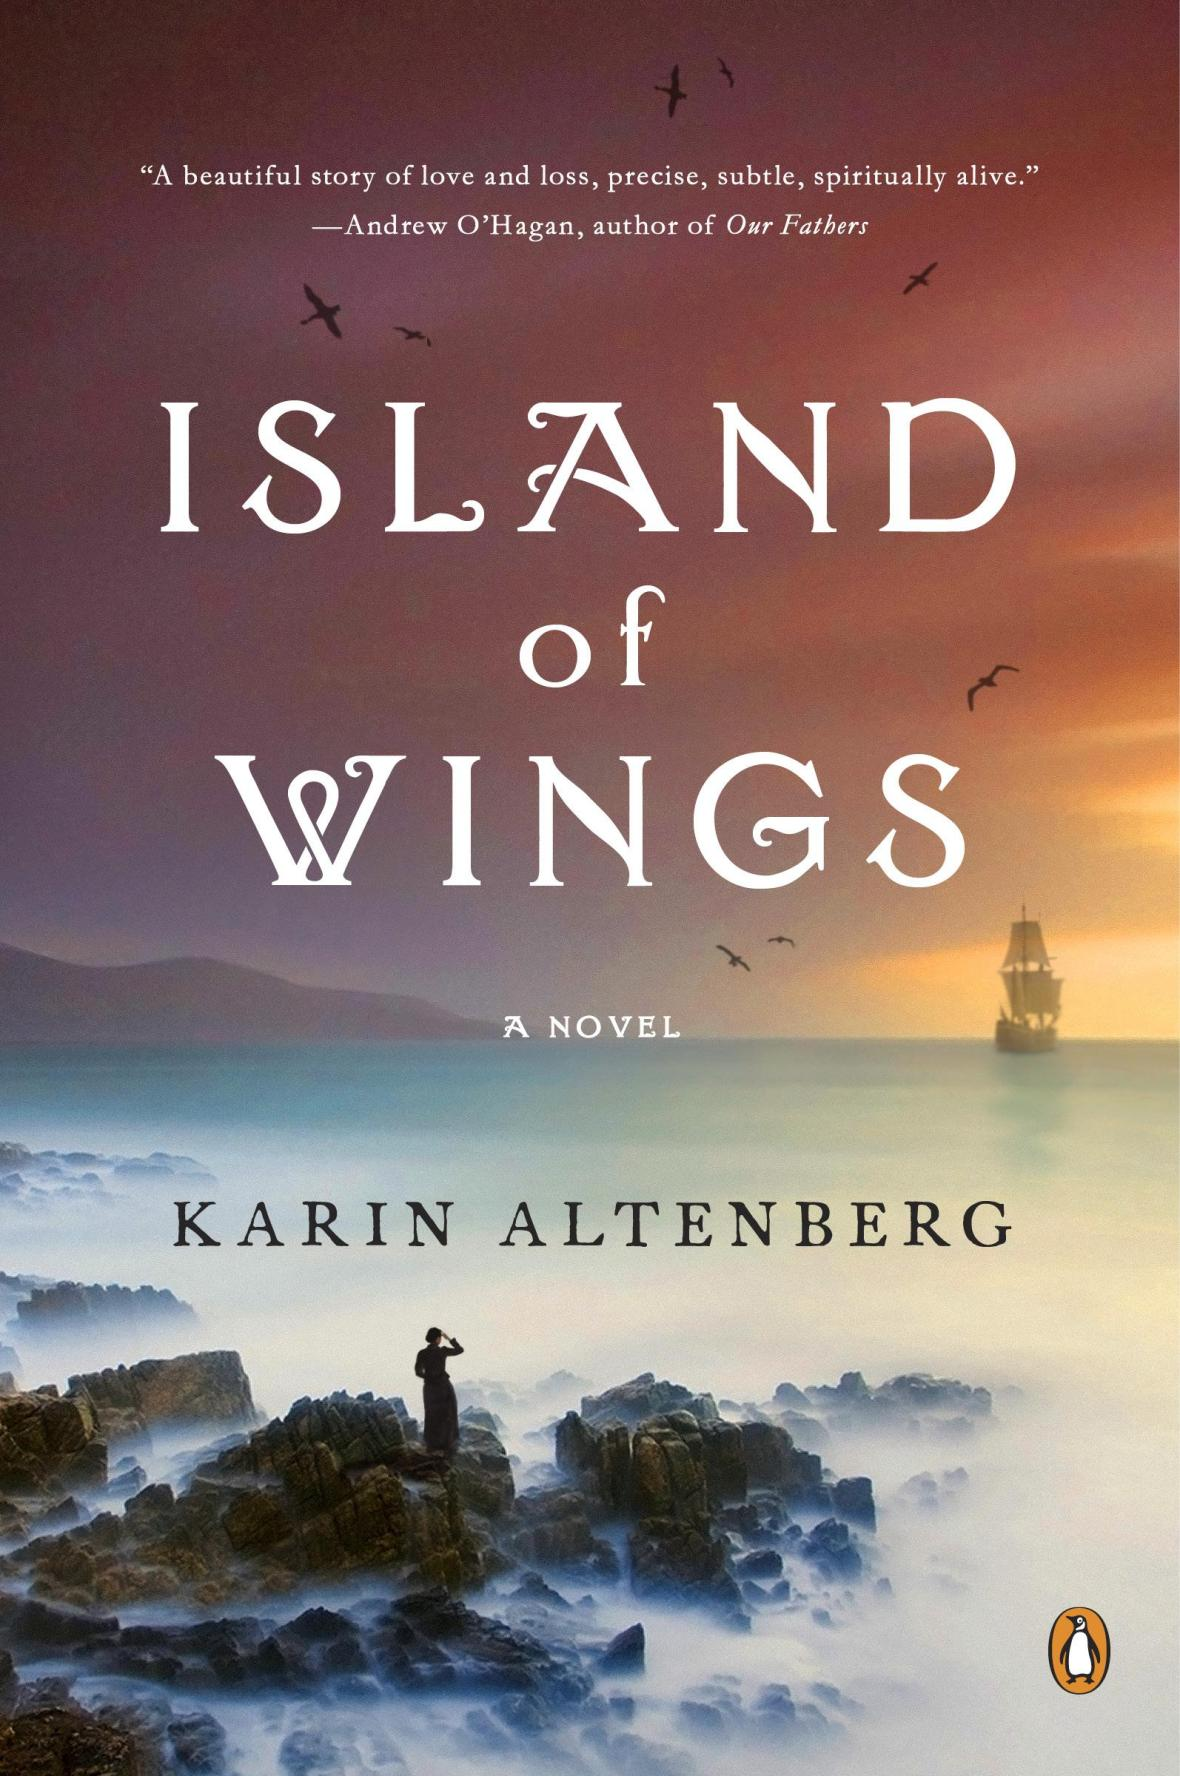 island-of-wings-cover-image